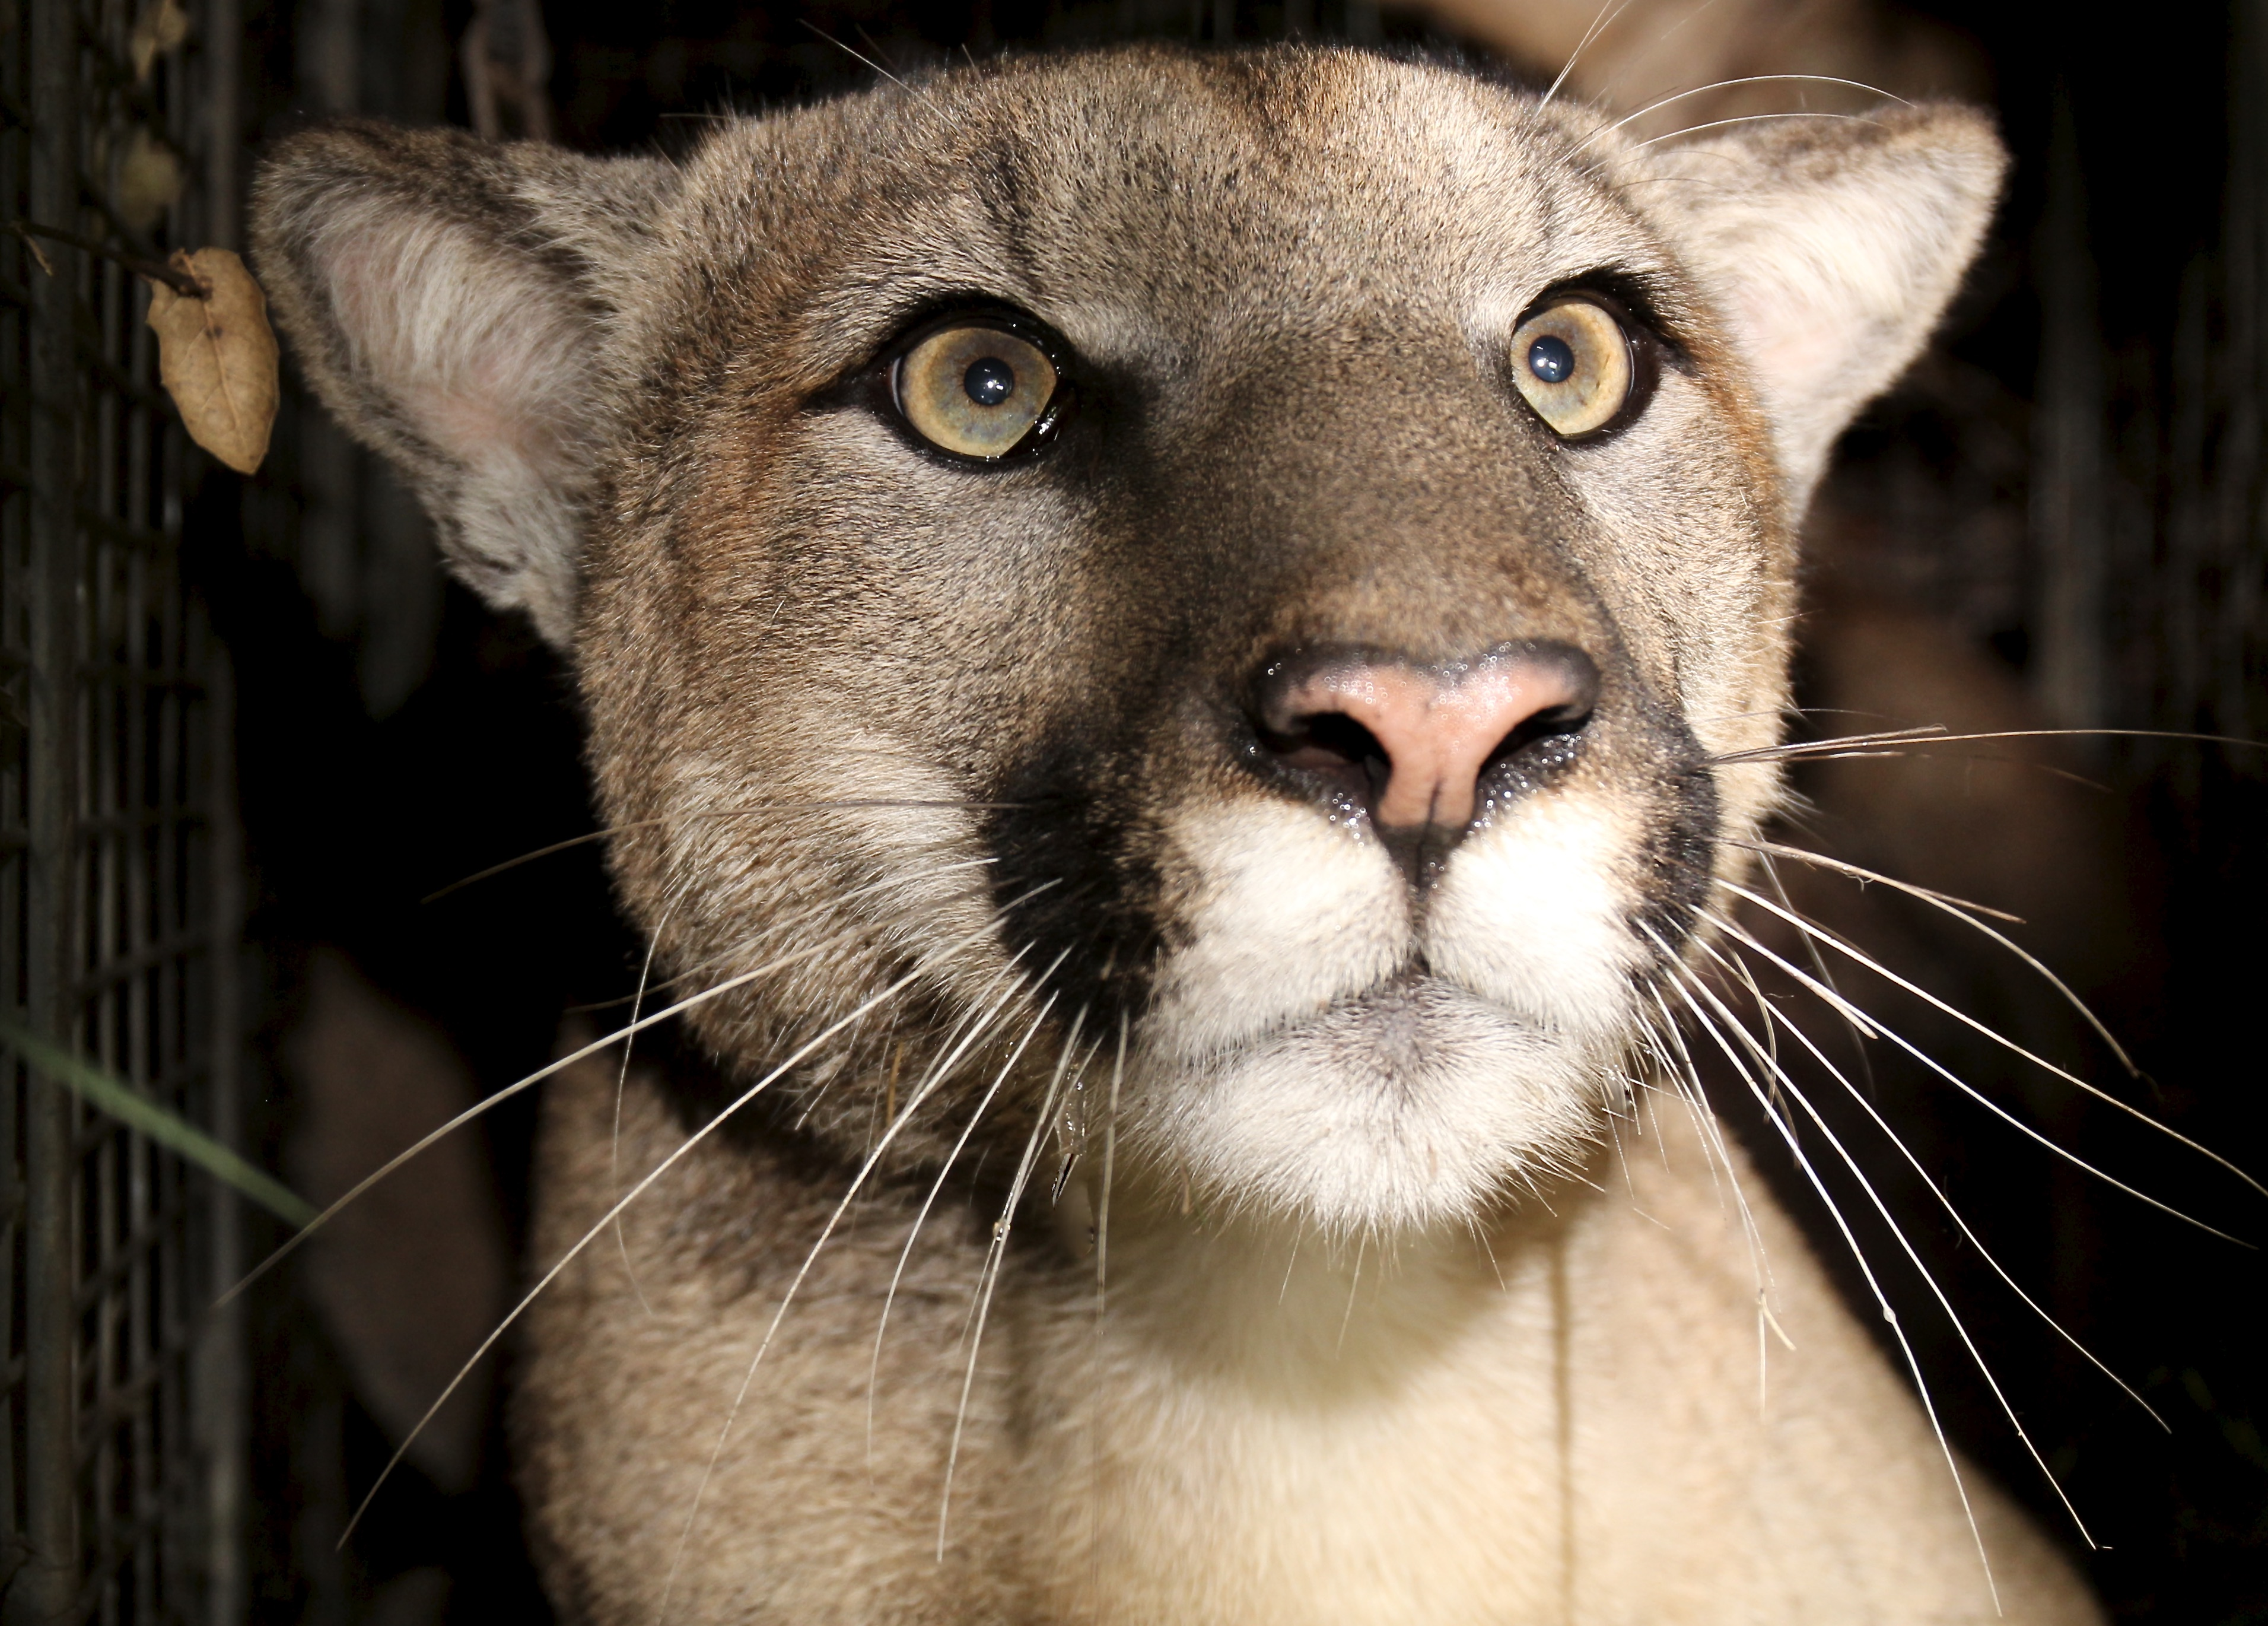 P81, first collared mountain lion to have reproductive and tail defects in Santa Monica Mountains